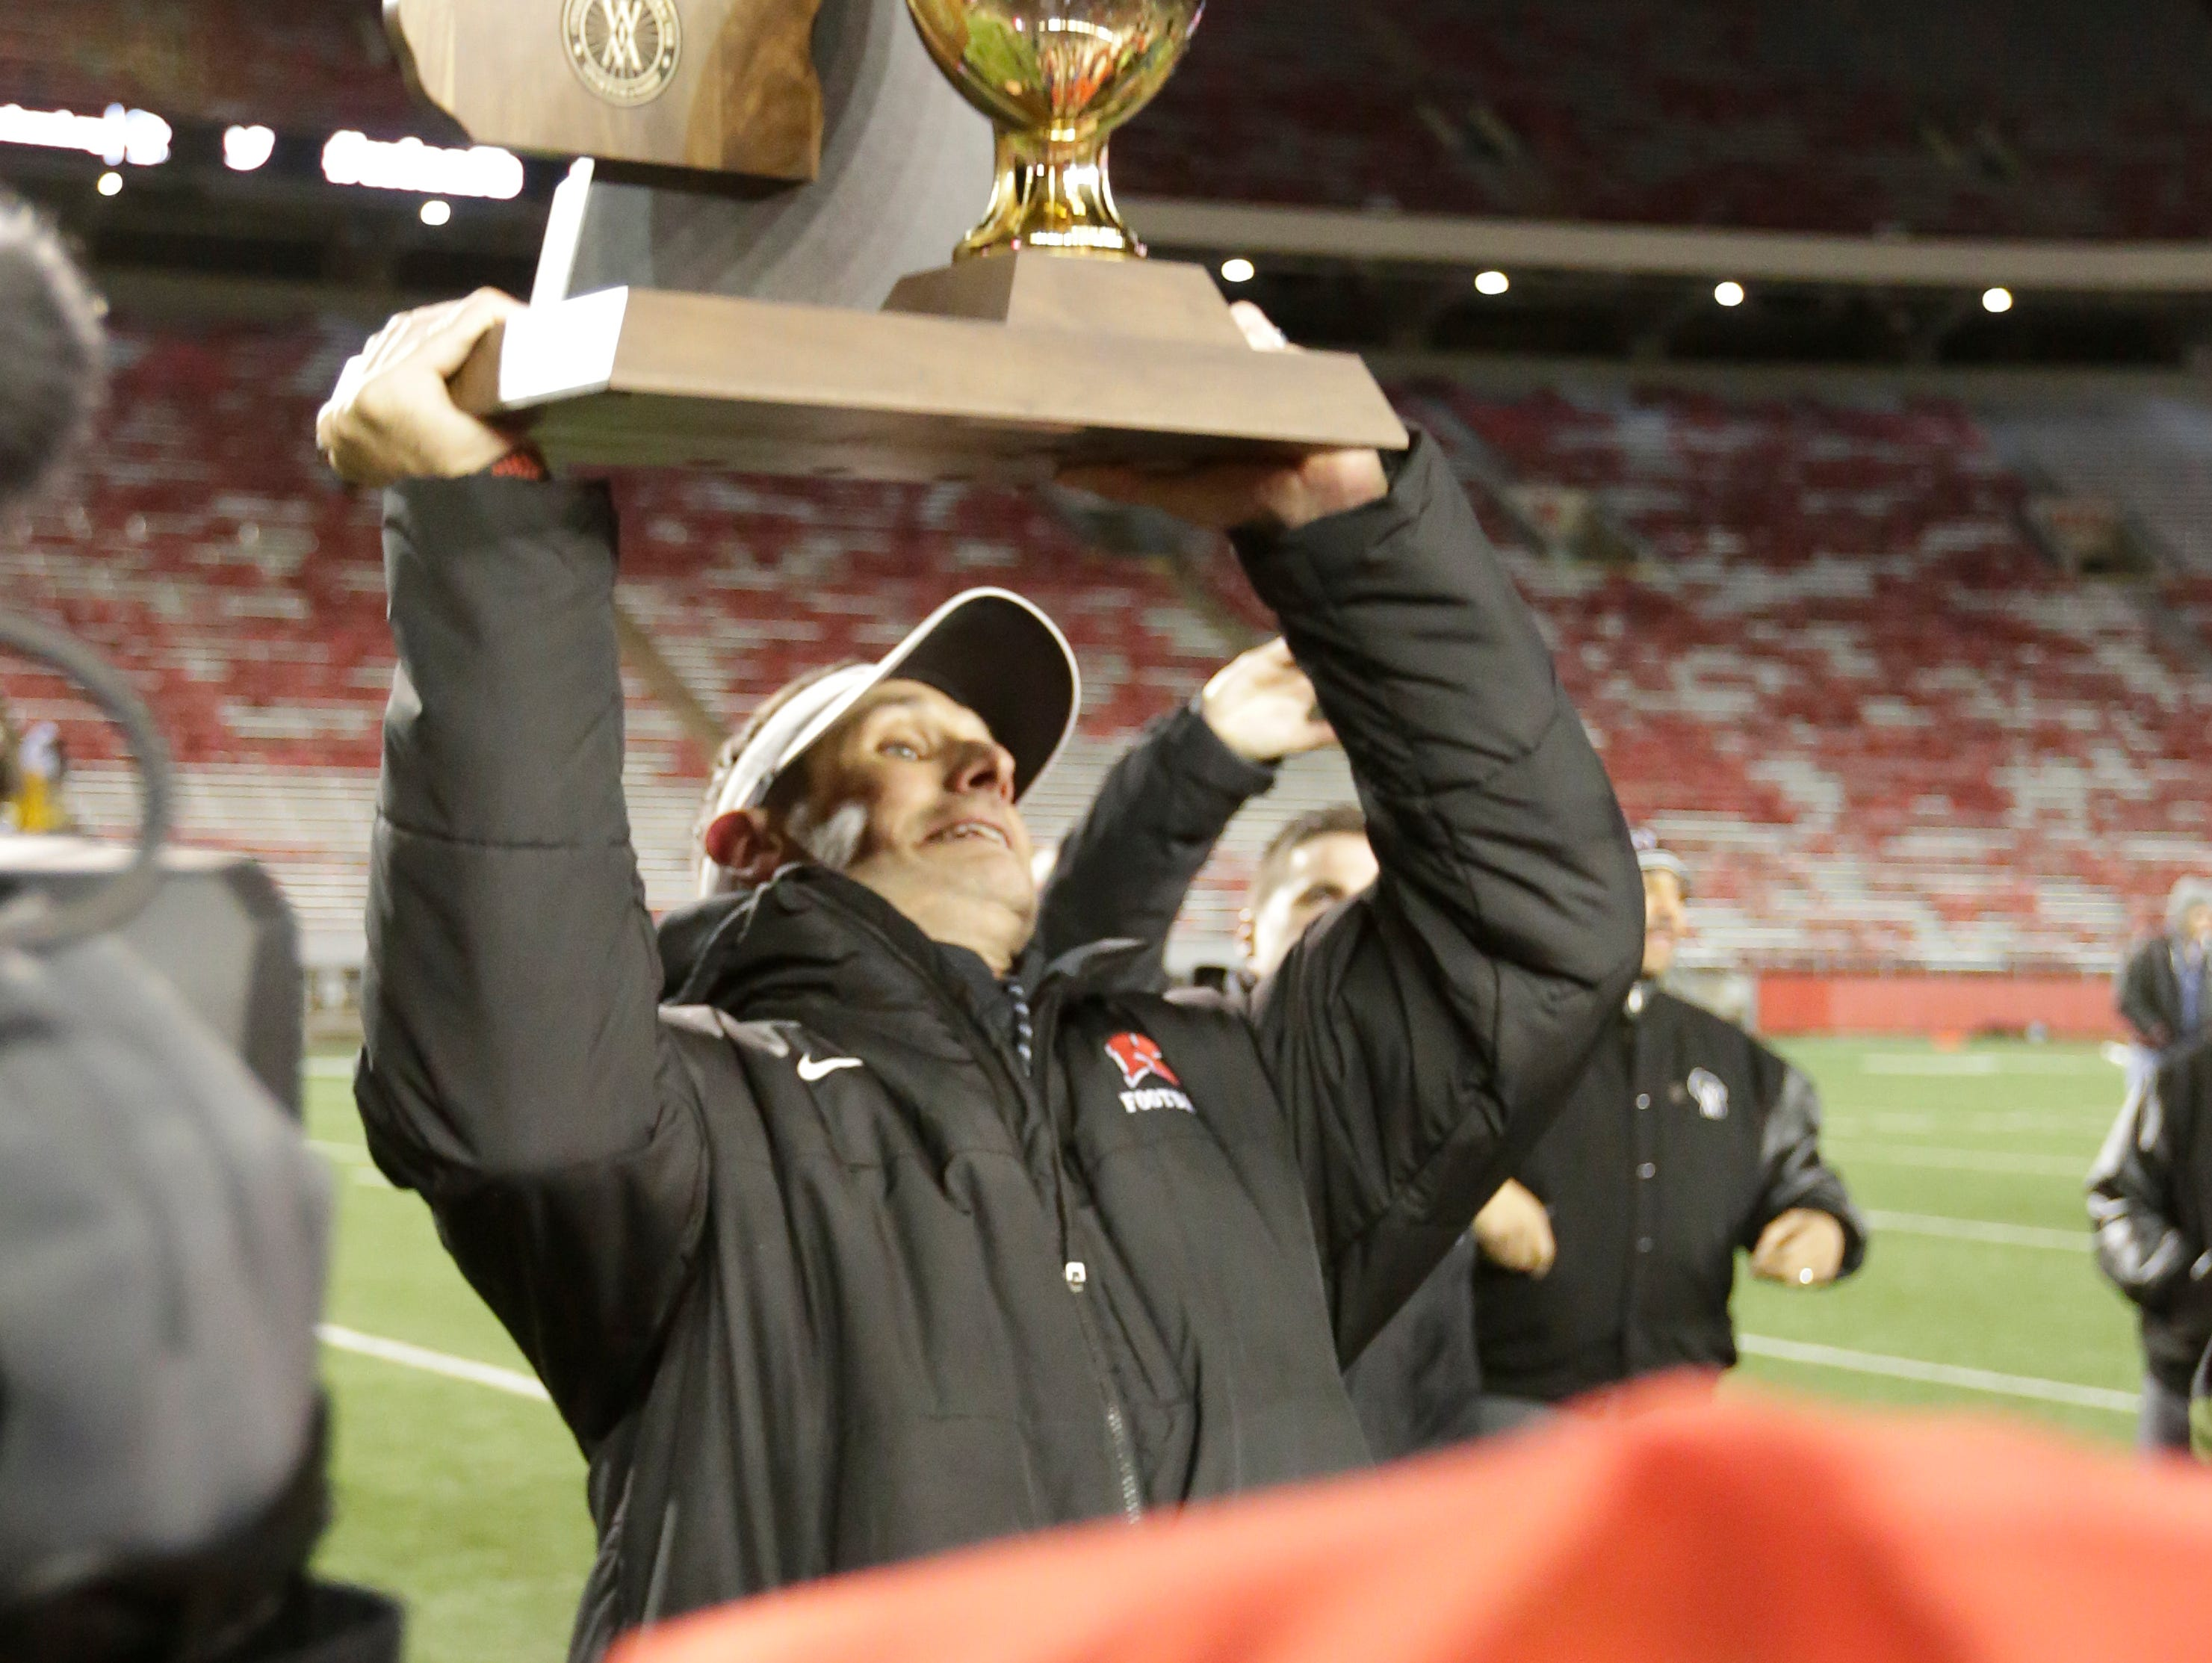 Kimberly High SchoolÕs Steve Jones hoists the Championship trophy as the Papermakers won their 4th straight championship 29 - 14. Kimberly Papermakers played Franklin Sabers in the Division 1 WIAA State Football finals held at Camp Randall in Madison, Wisc. Friday, November 18, 2016.